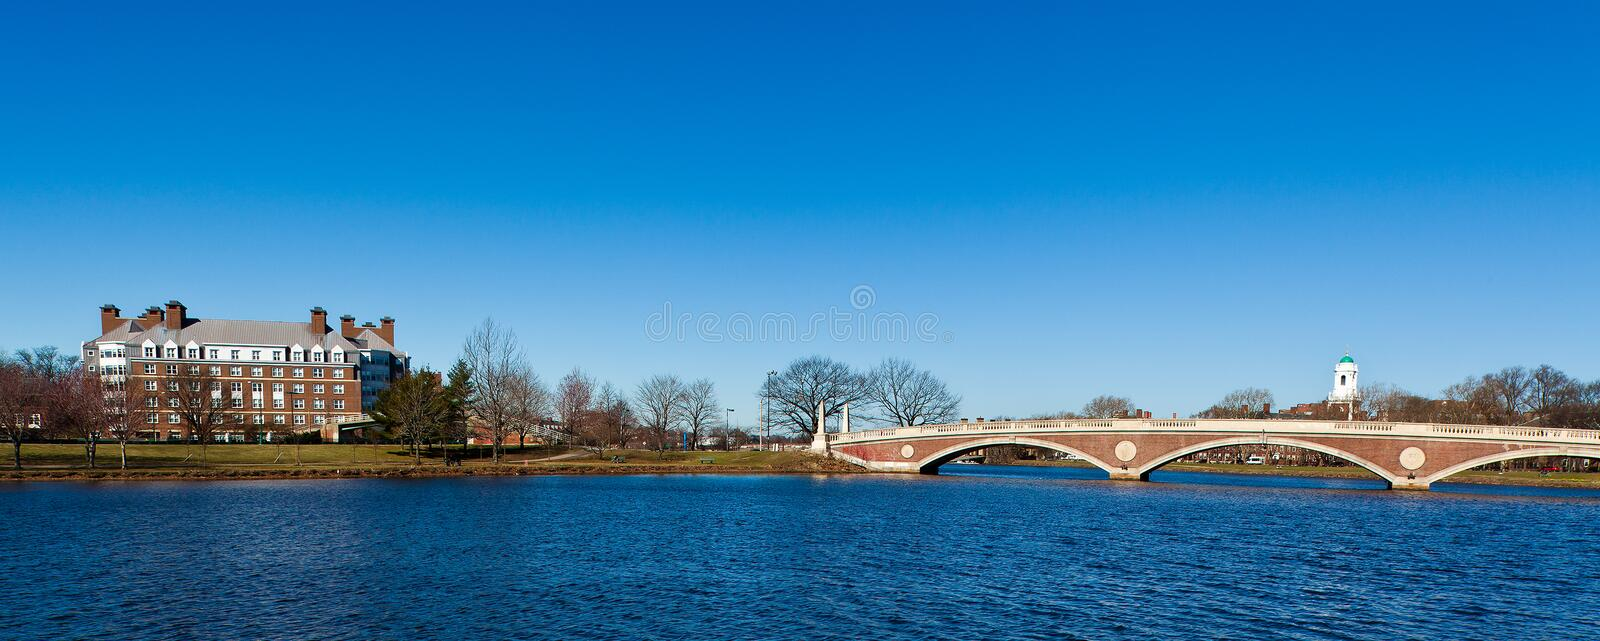 Charles River stock afbeelding